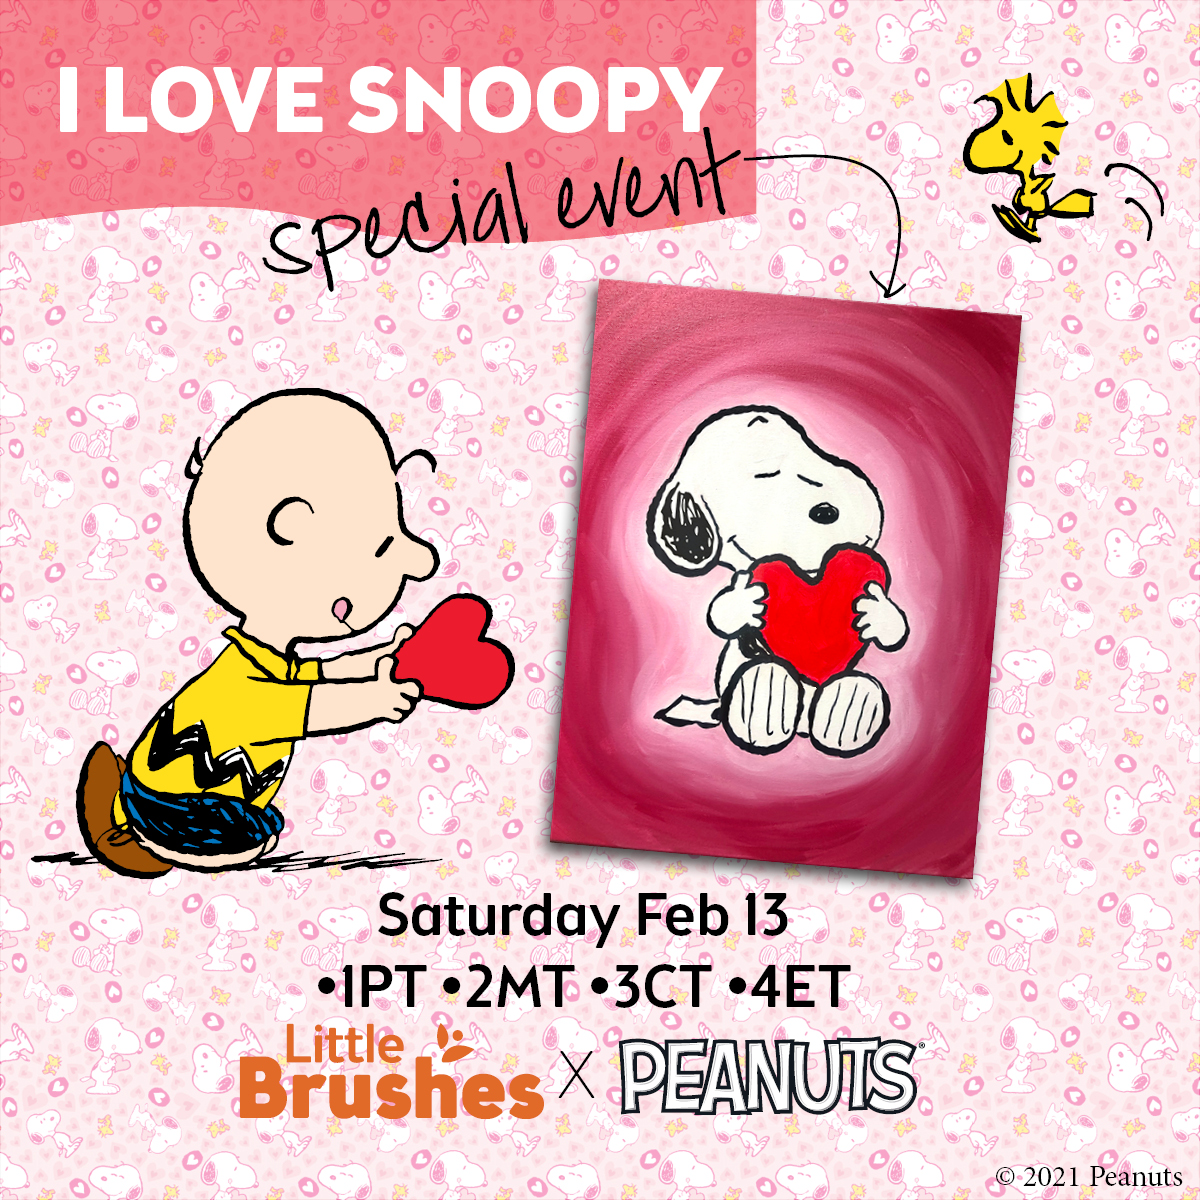 I Love Snoopy! Little Brushes Special Event